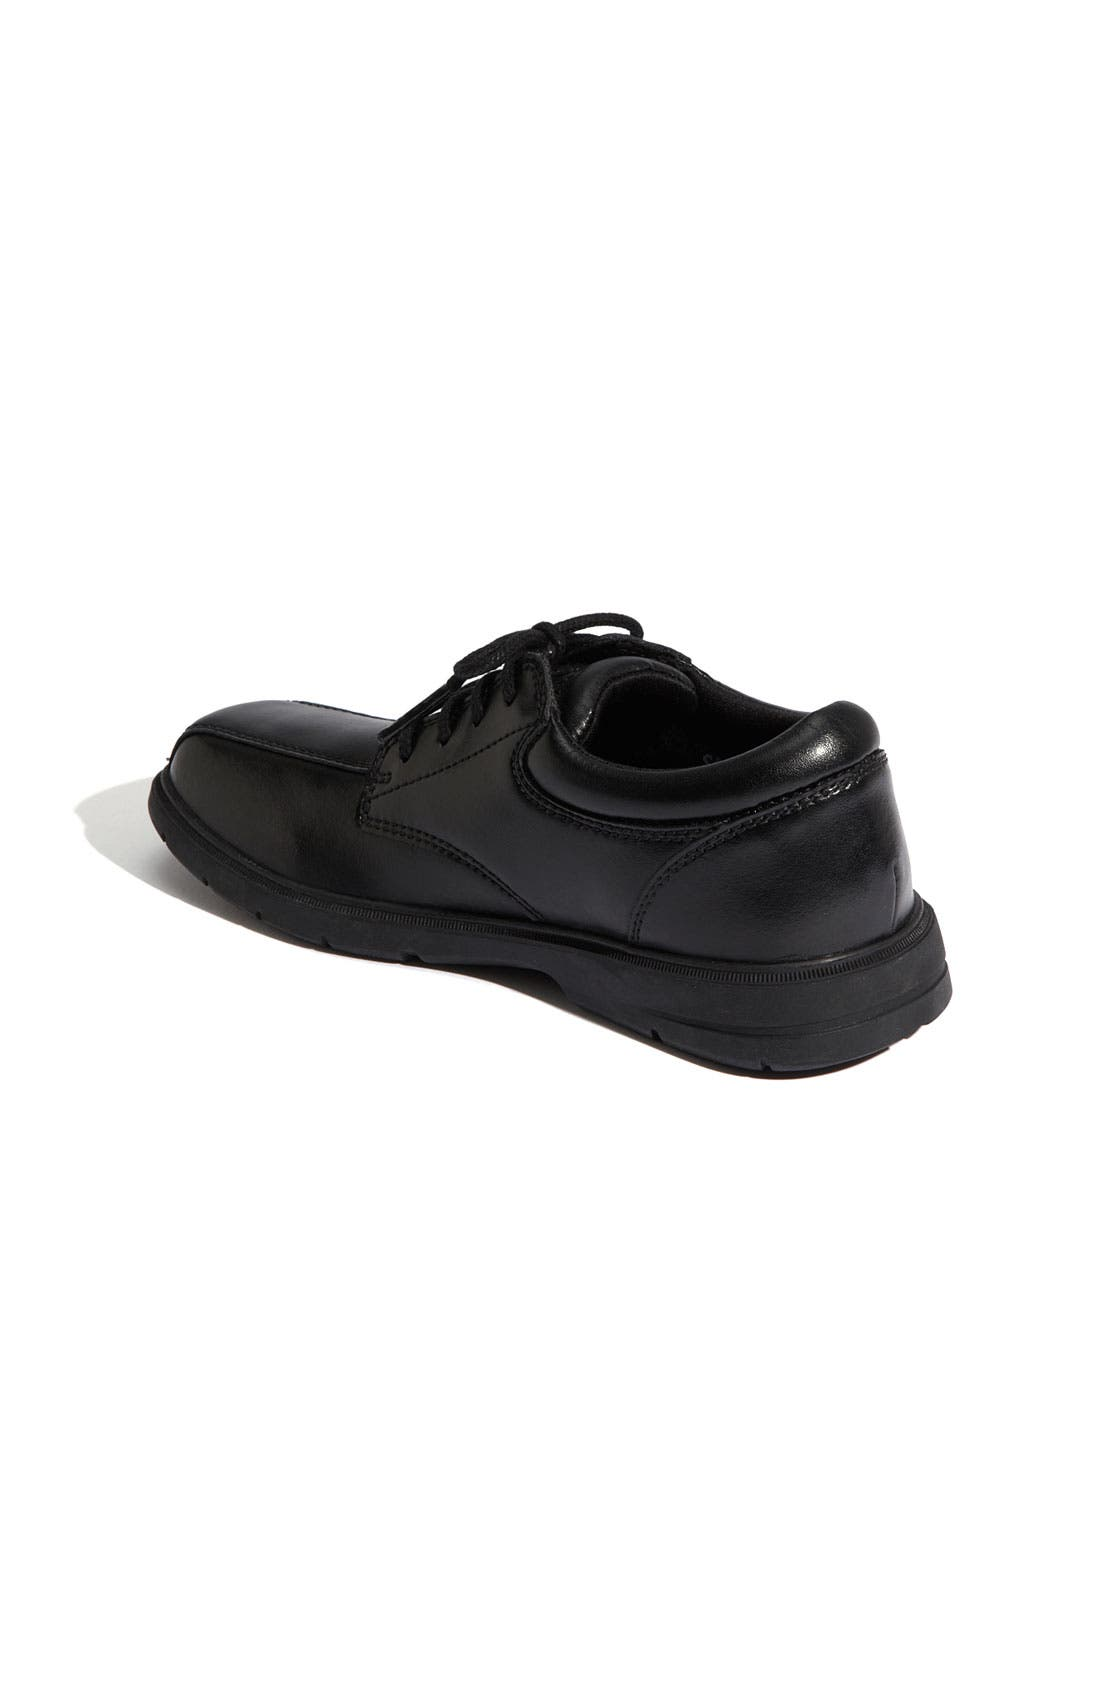 Alternate Image 2  - Sperry Top-Sider® Kids 'Nathaniel' Oxford (Toddler, Little Kid & Big Kid)